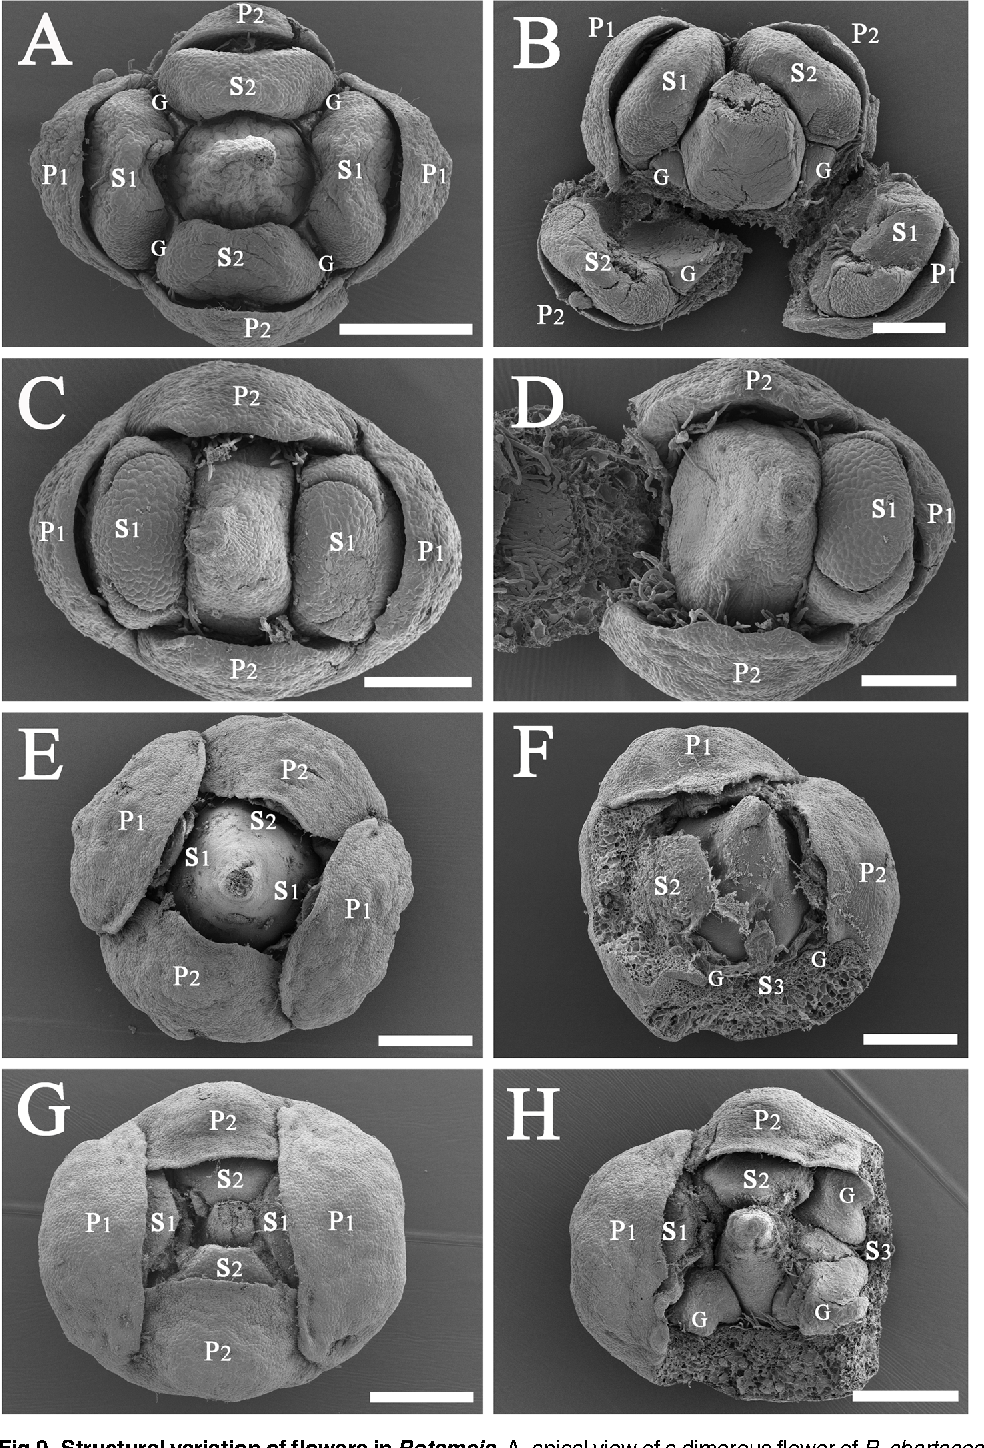 Fig 9. Structural variation of flowers in Potameia. A, apical view of a dimerous flower of P. chartacea, bar = 500 μm; B, lateral view of a dissected flower of P. chartacea displaying the glands and two-locular anthers, bar = 200 μm; C, apical view of a flower of P. micrantha displaying the one-locular anthers, bar = 200 μm; D, a dissected dimerous flower of P. micrantha lacking stamens and glands of the 3rd whorl, bar = 200 μm; E, apical view of P. microphylla displaying the included stamens and the exposed pistil, bar = 500 μm; F, lateral view of a flower of P. microphylla displaying the minute stamens and glands of the 3rd whorl, bar = 500 μm; G, apical view of a flower of P. sp., bar = 500 μm; H, lateral view of a dissected flower of P. sp. displaying the stamens and glands of the 3rd whorl, bar = 500 μm.